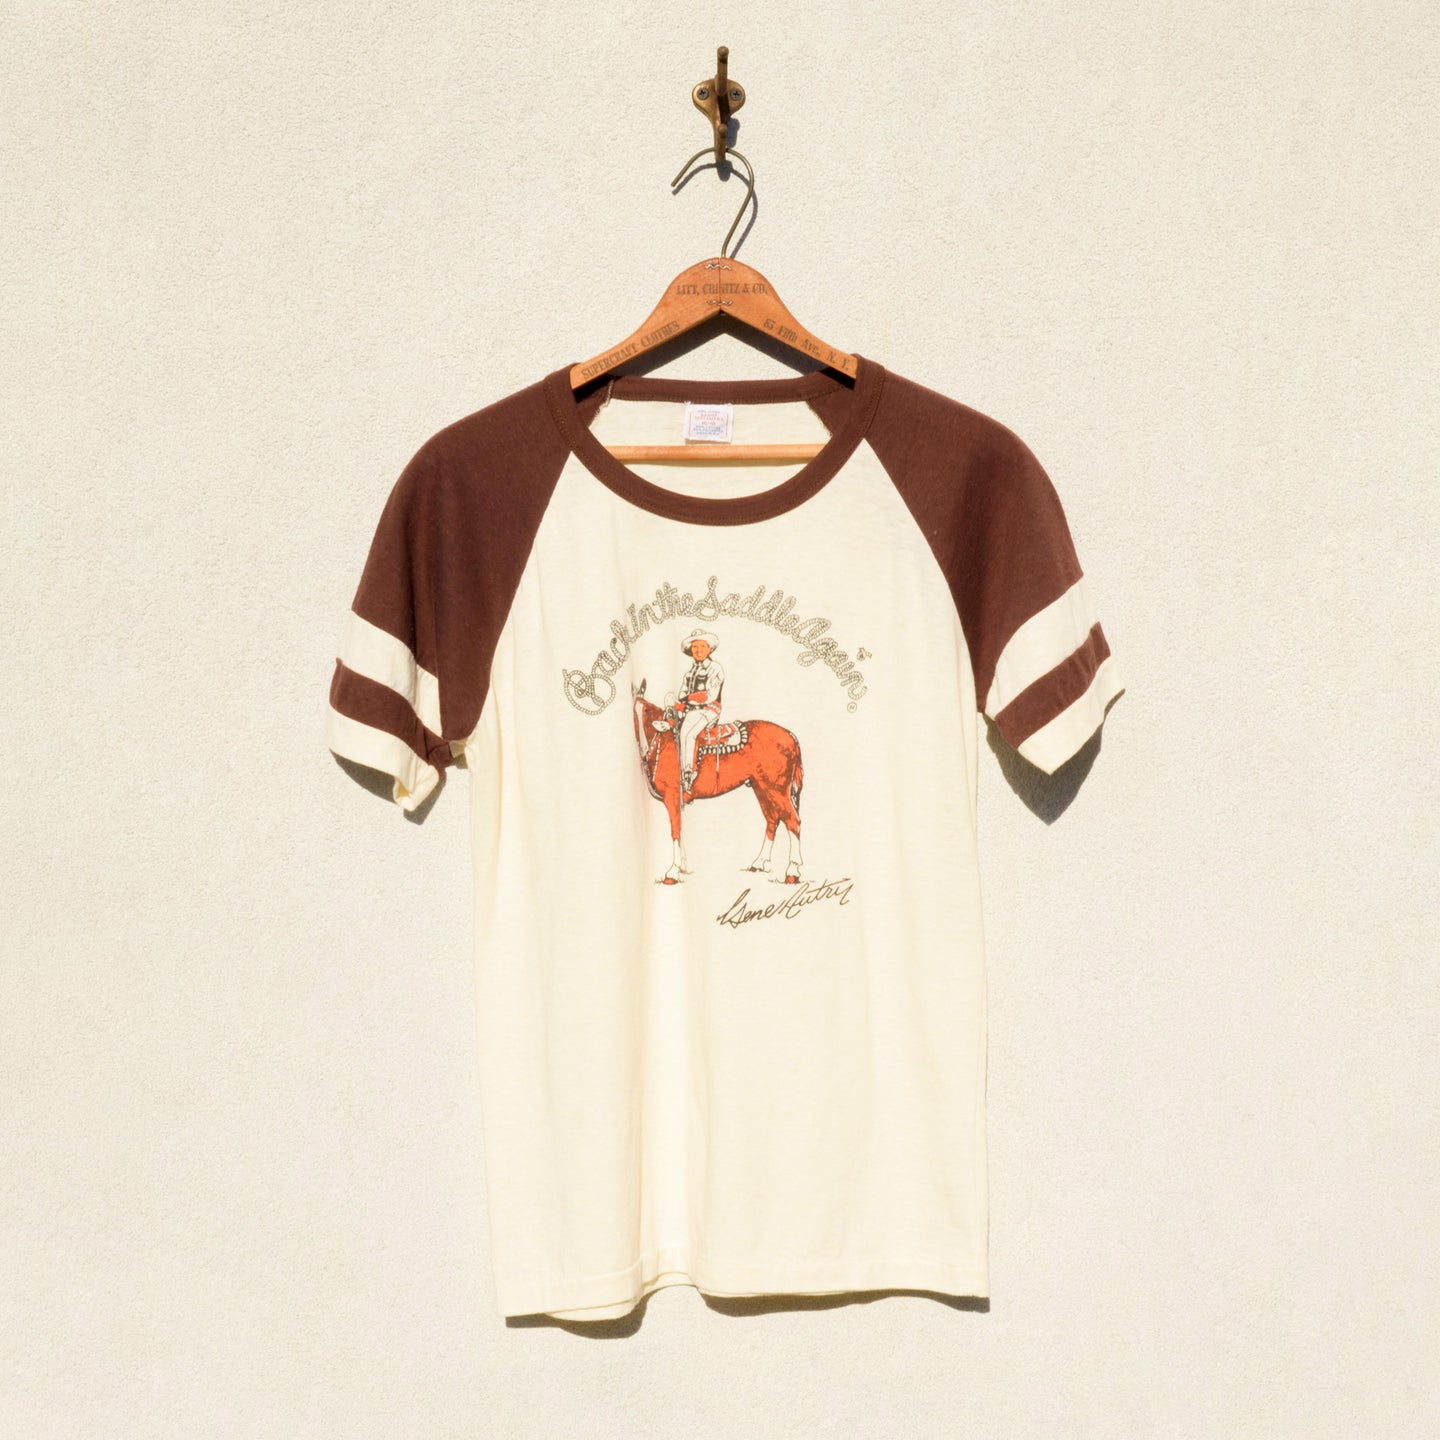 SPORT SPECIALITIES - Back In The Saddle Again Movie Print Tee Shirt